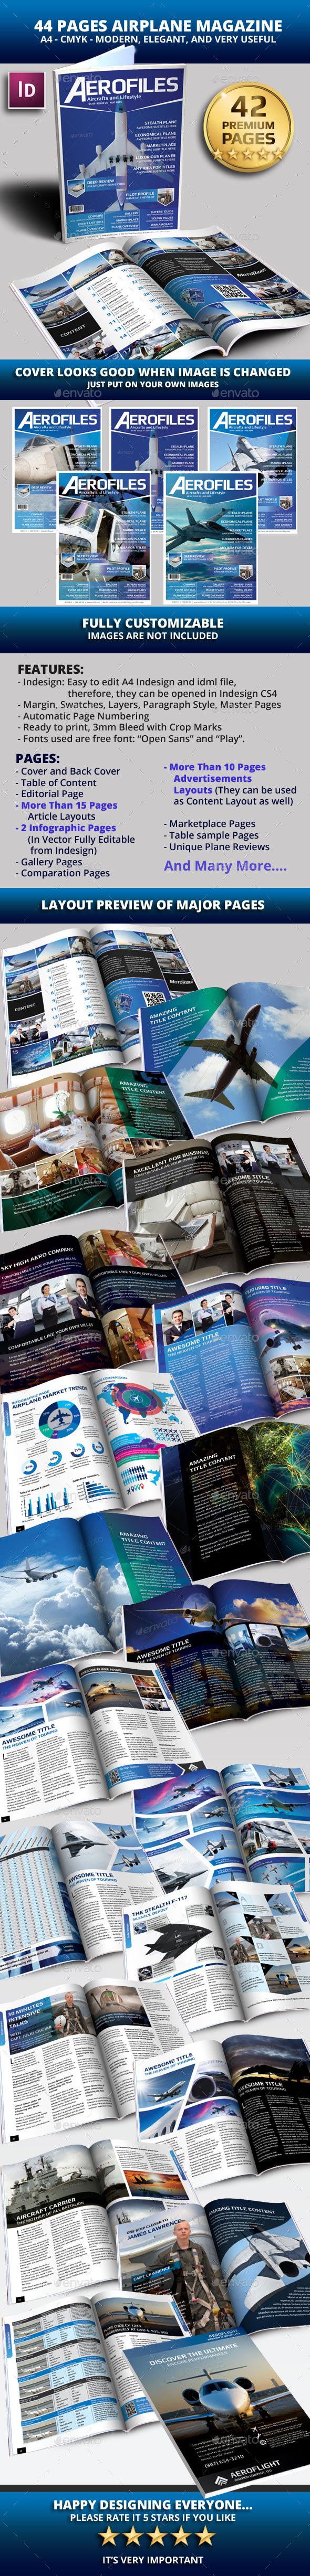 44 Pages Airplane Magazine Modern Template - Magazines Print Templates